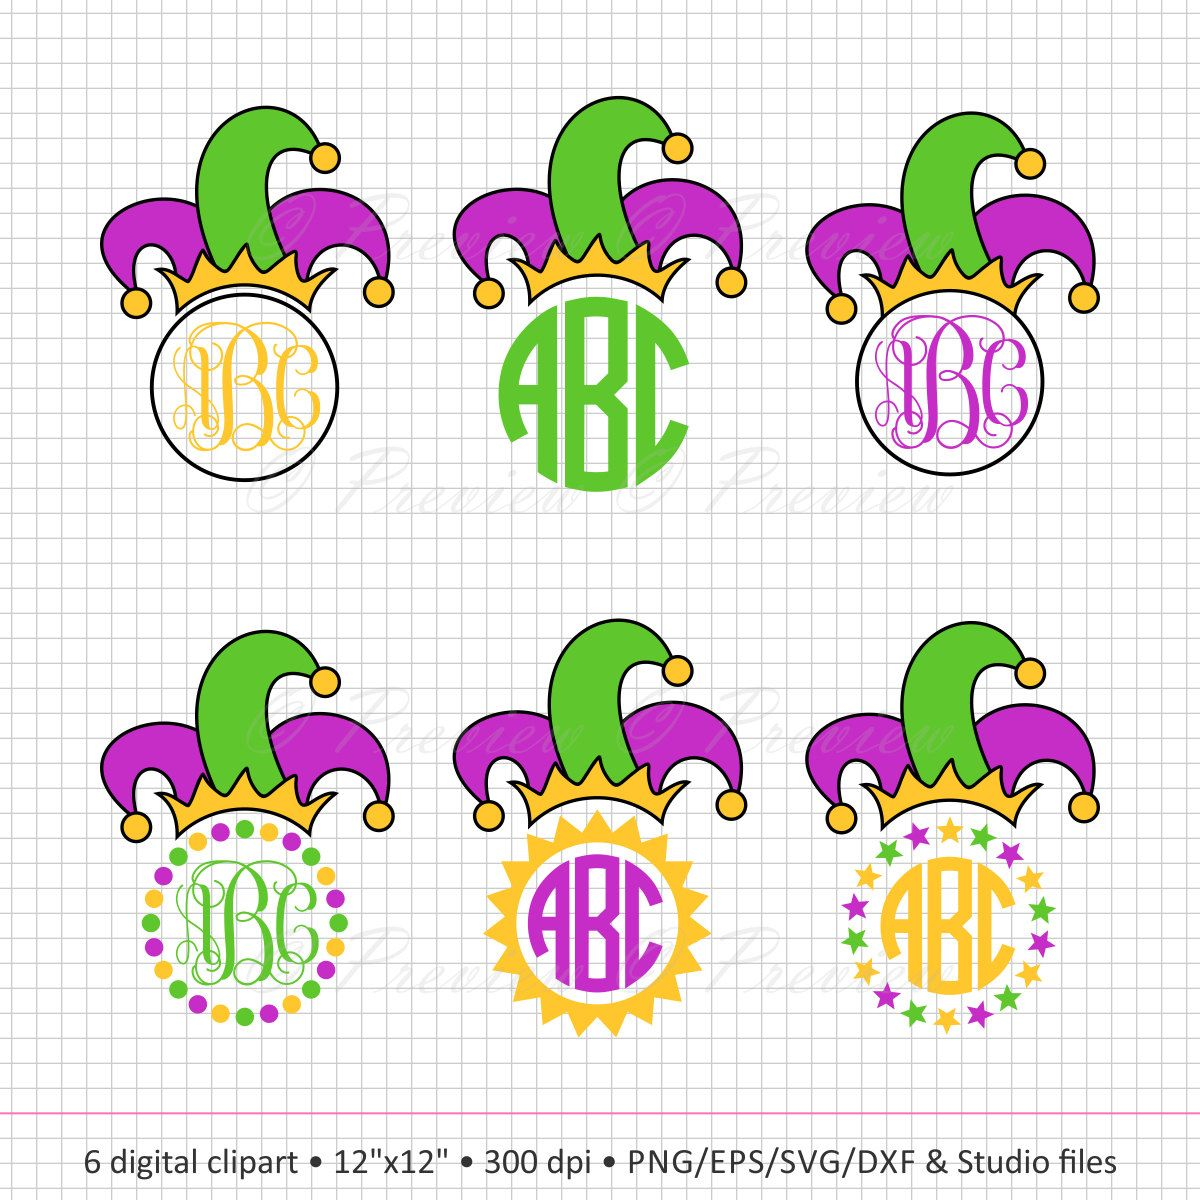 Buy 2 Get 1 Free! Digital Clipart Jester Crown Frames Monogram ...